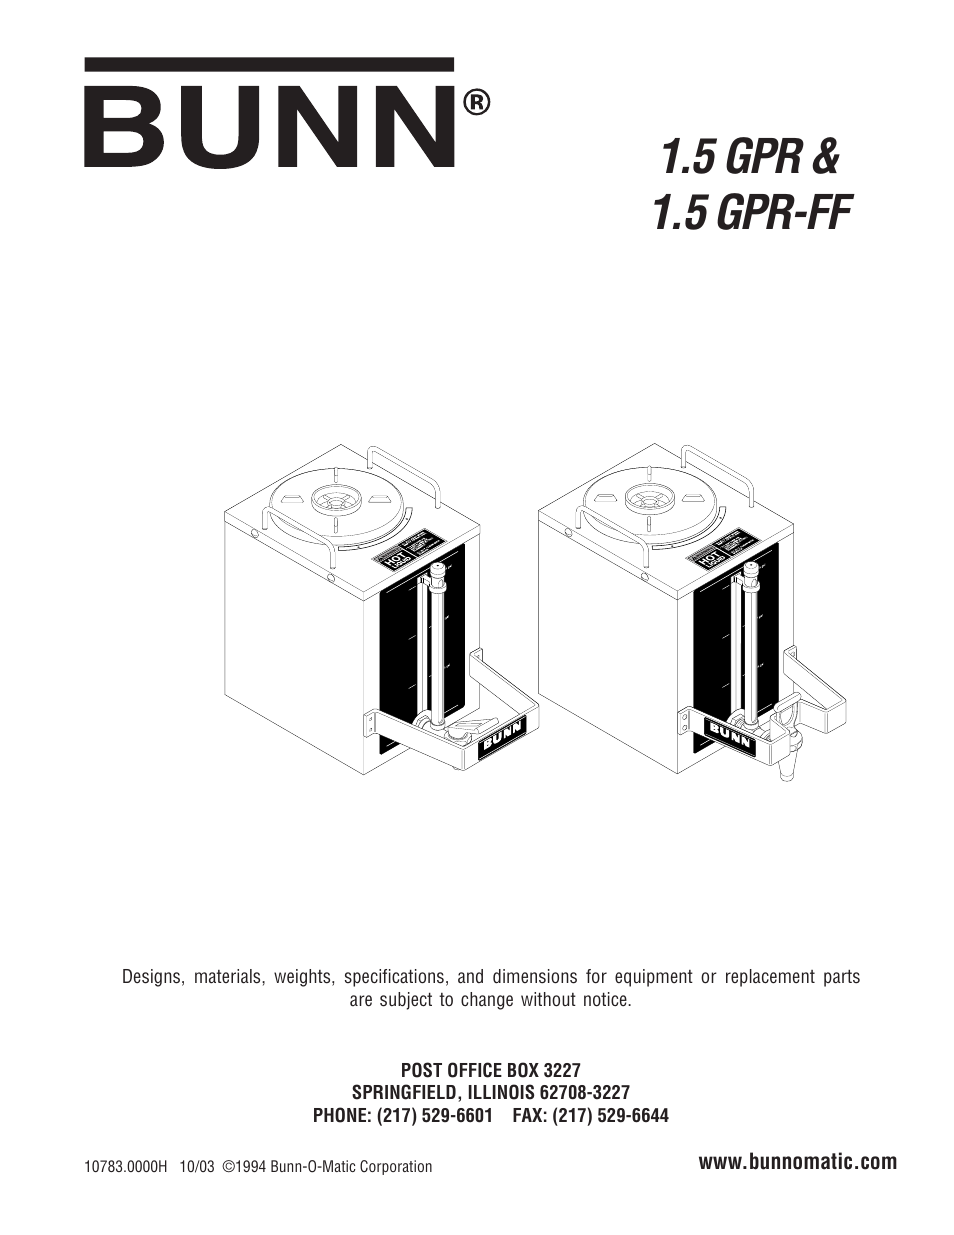 Bunn Parts Catalog Wiring Diagram User Manual Pages Also For Gpr 954x1235